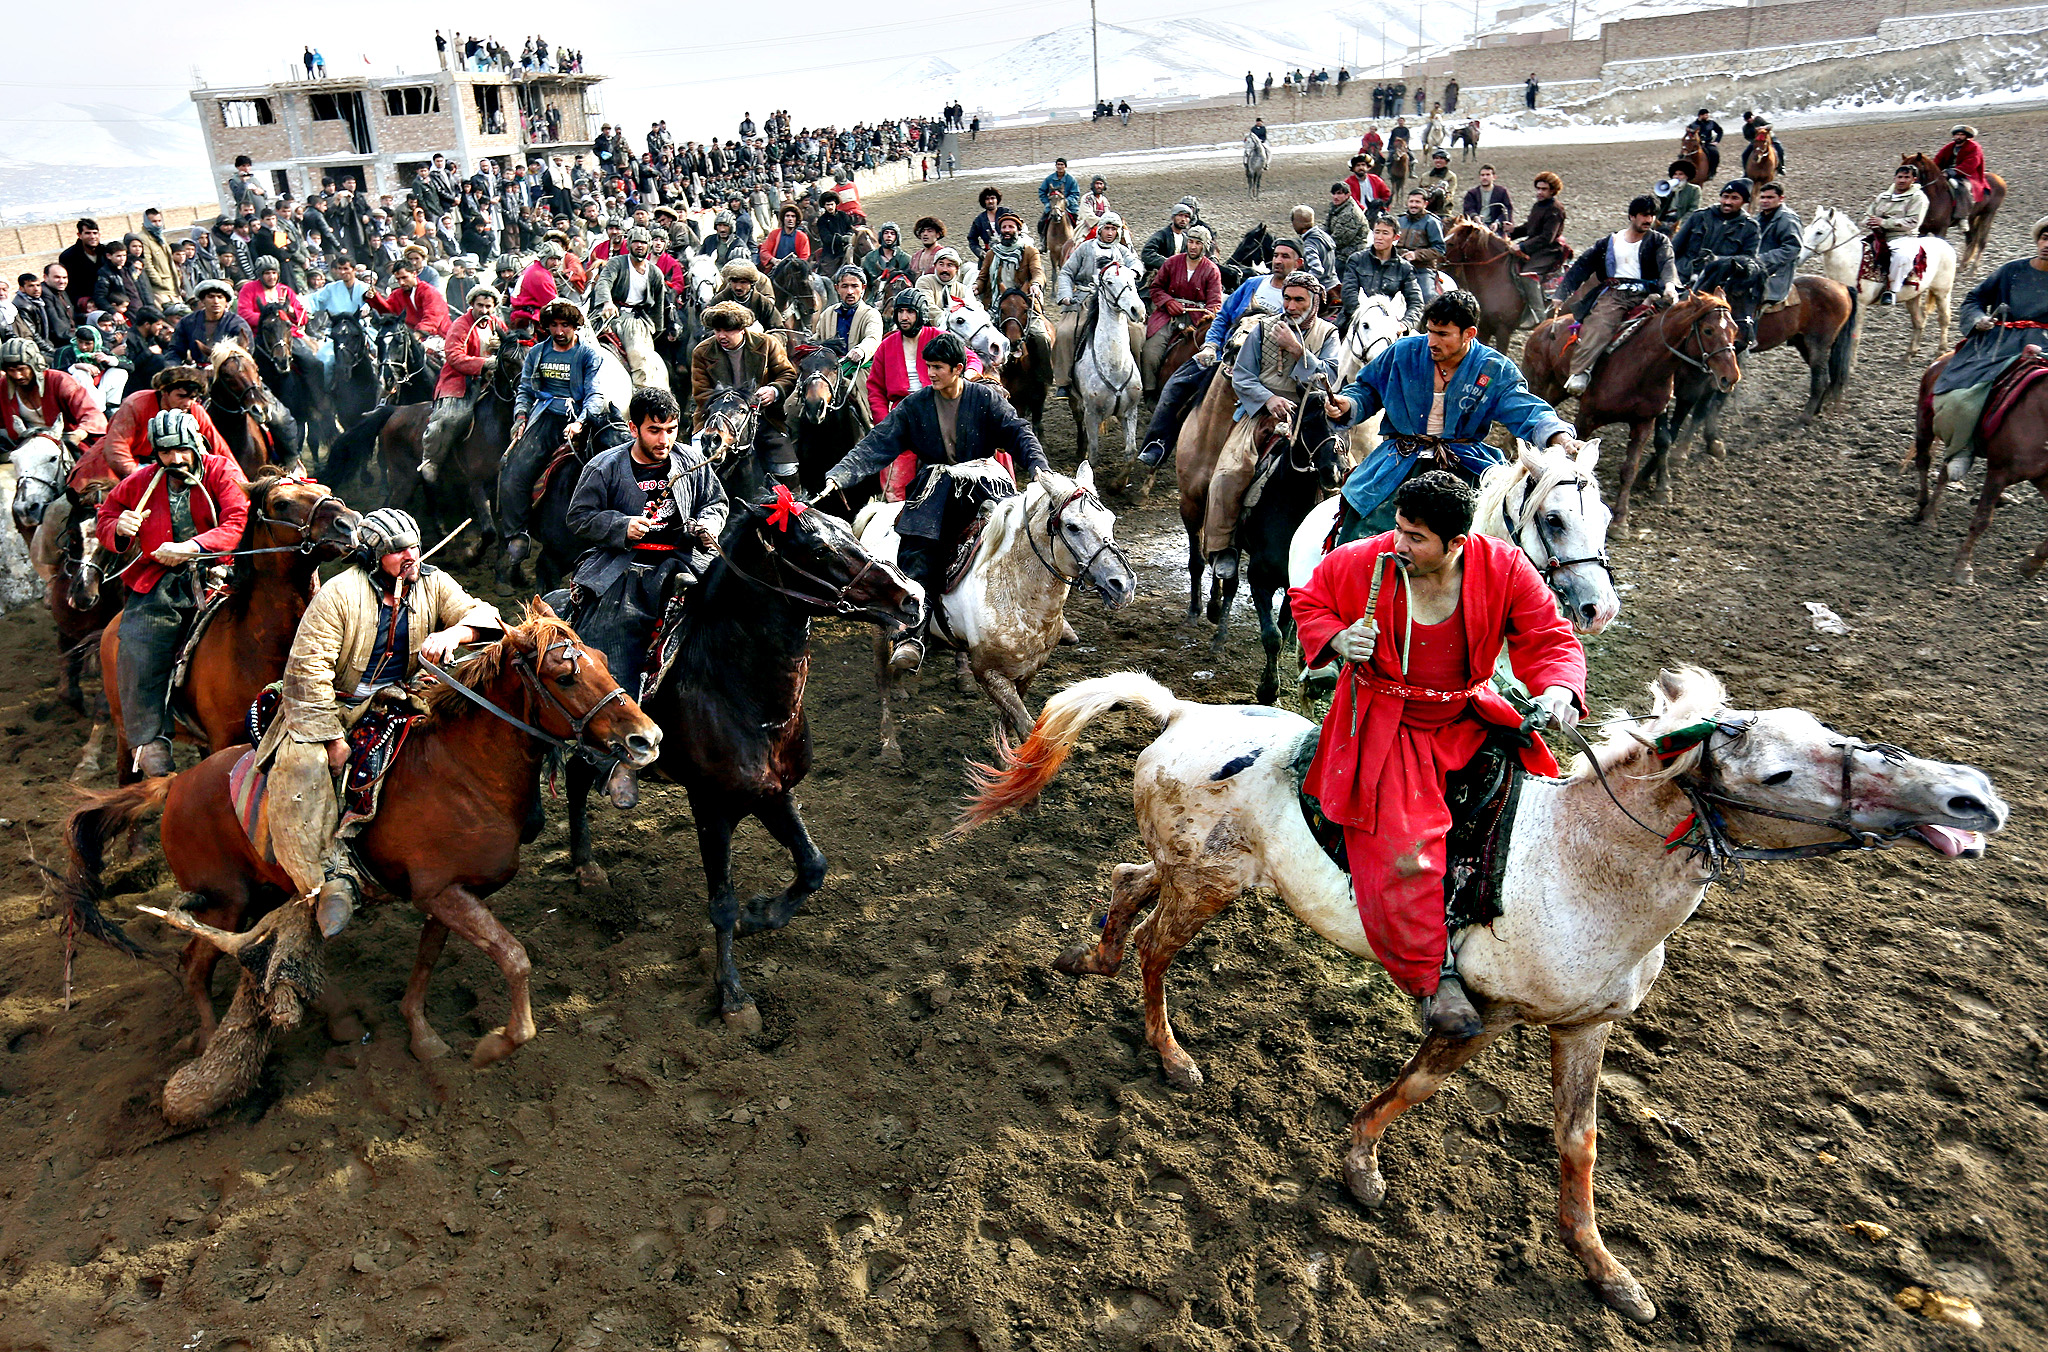 Afghan horse riders compete for the goat during a friendly buzkashi match on the outskirts of Kabul, Afghanistan, Thursday, Jan. 29, 2015. Buzkashi is a traditional and the national sport of Afghanistan, where players compete to place a goat carcass into a goal circle. It was banned during the Taliban rule.